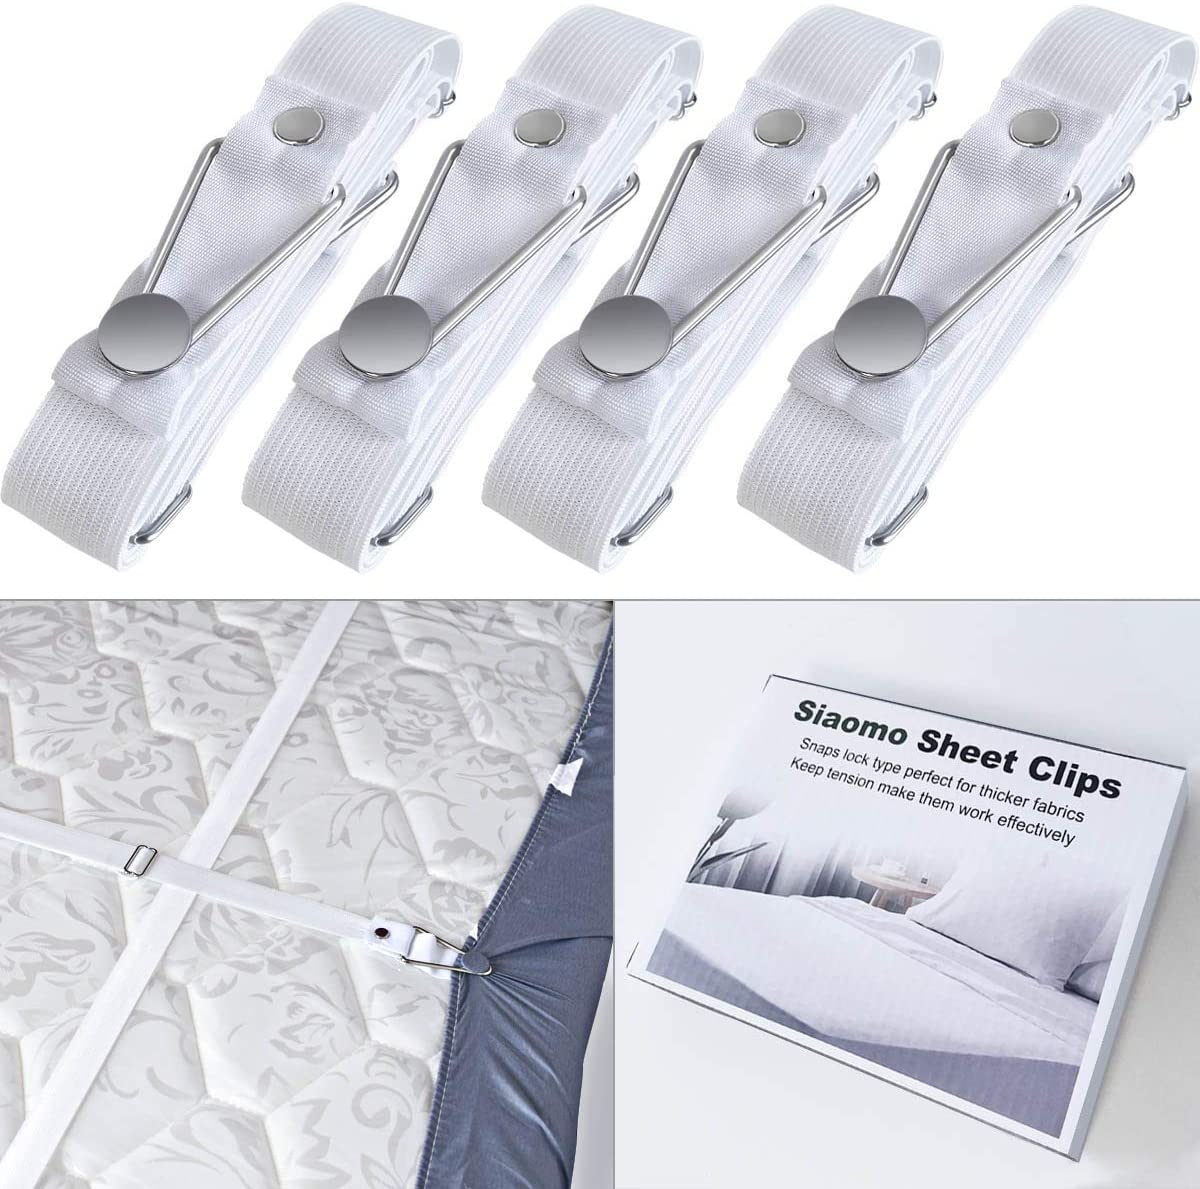 Mattress Pad Covers Bed Sheet Fasteners,Adjustable Triangle Heavy Duty Elastic Sheet Band Straps Suspenders Corner Gripper Holder Clip for Fitted Bed Sheets white 4pcs) Sofa Cushion (black 4pcs